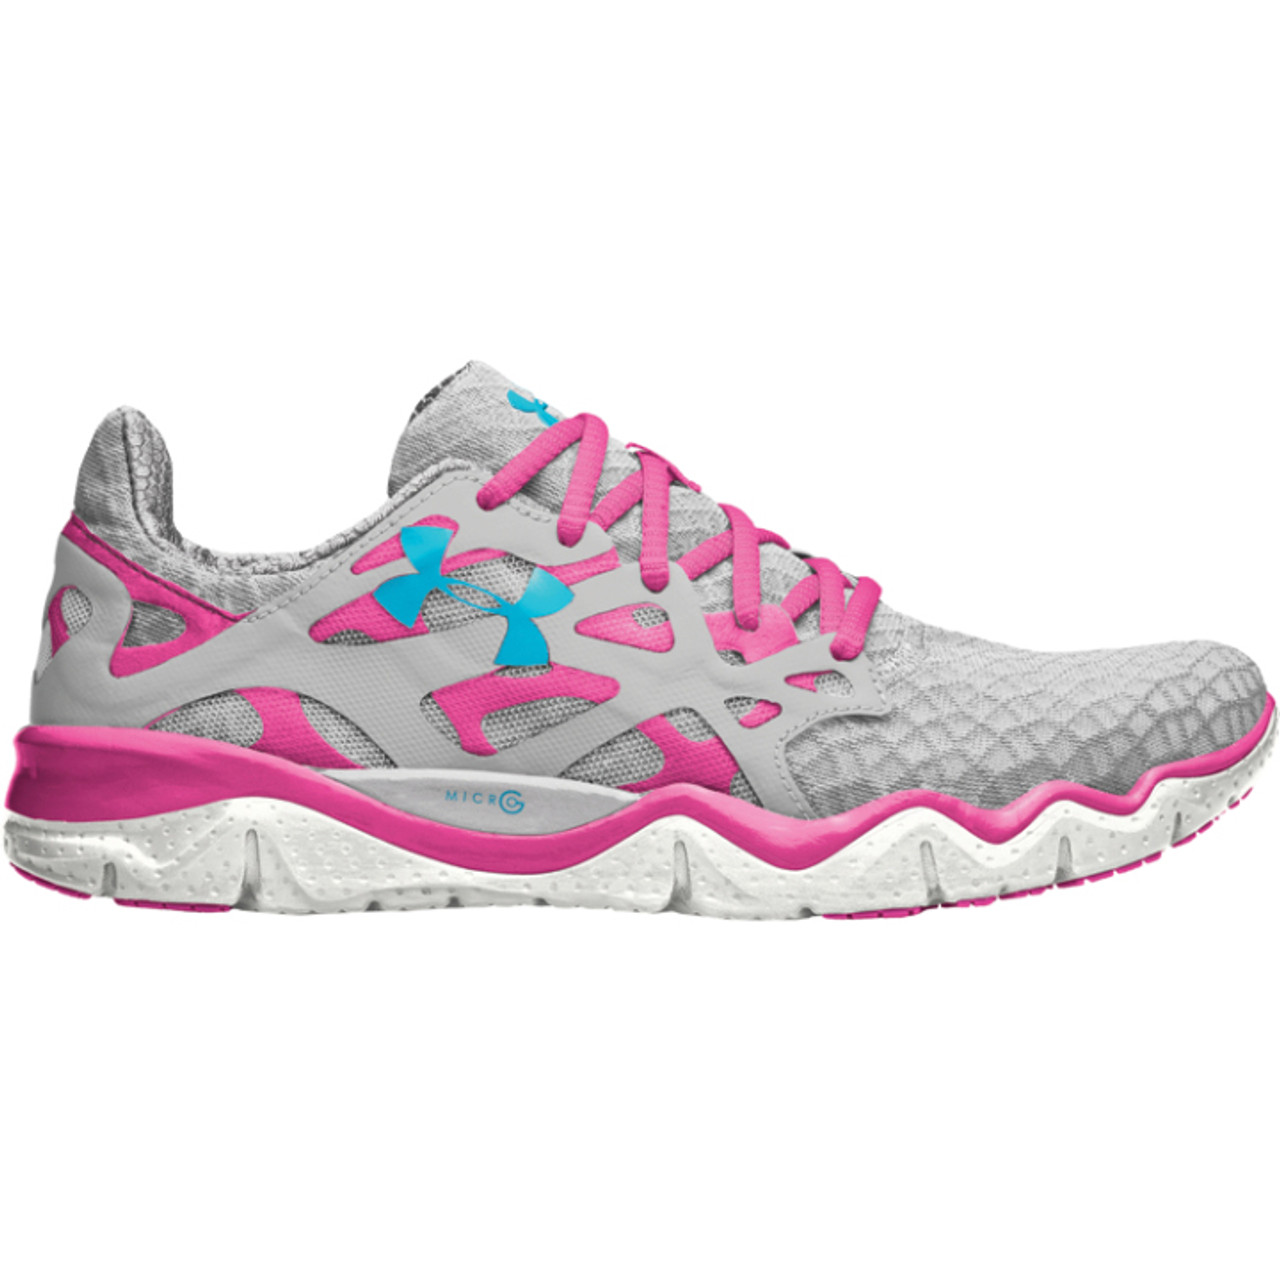 Womens Under Armour Micro G Monza Running Shoe Silver Pinkadelic  Blue -  Sieverts Sporting Goods 659476bec